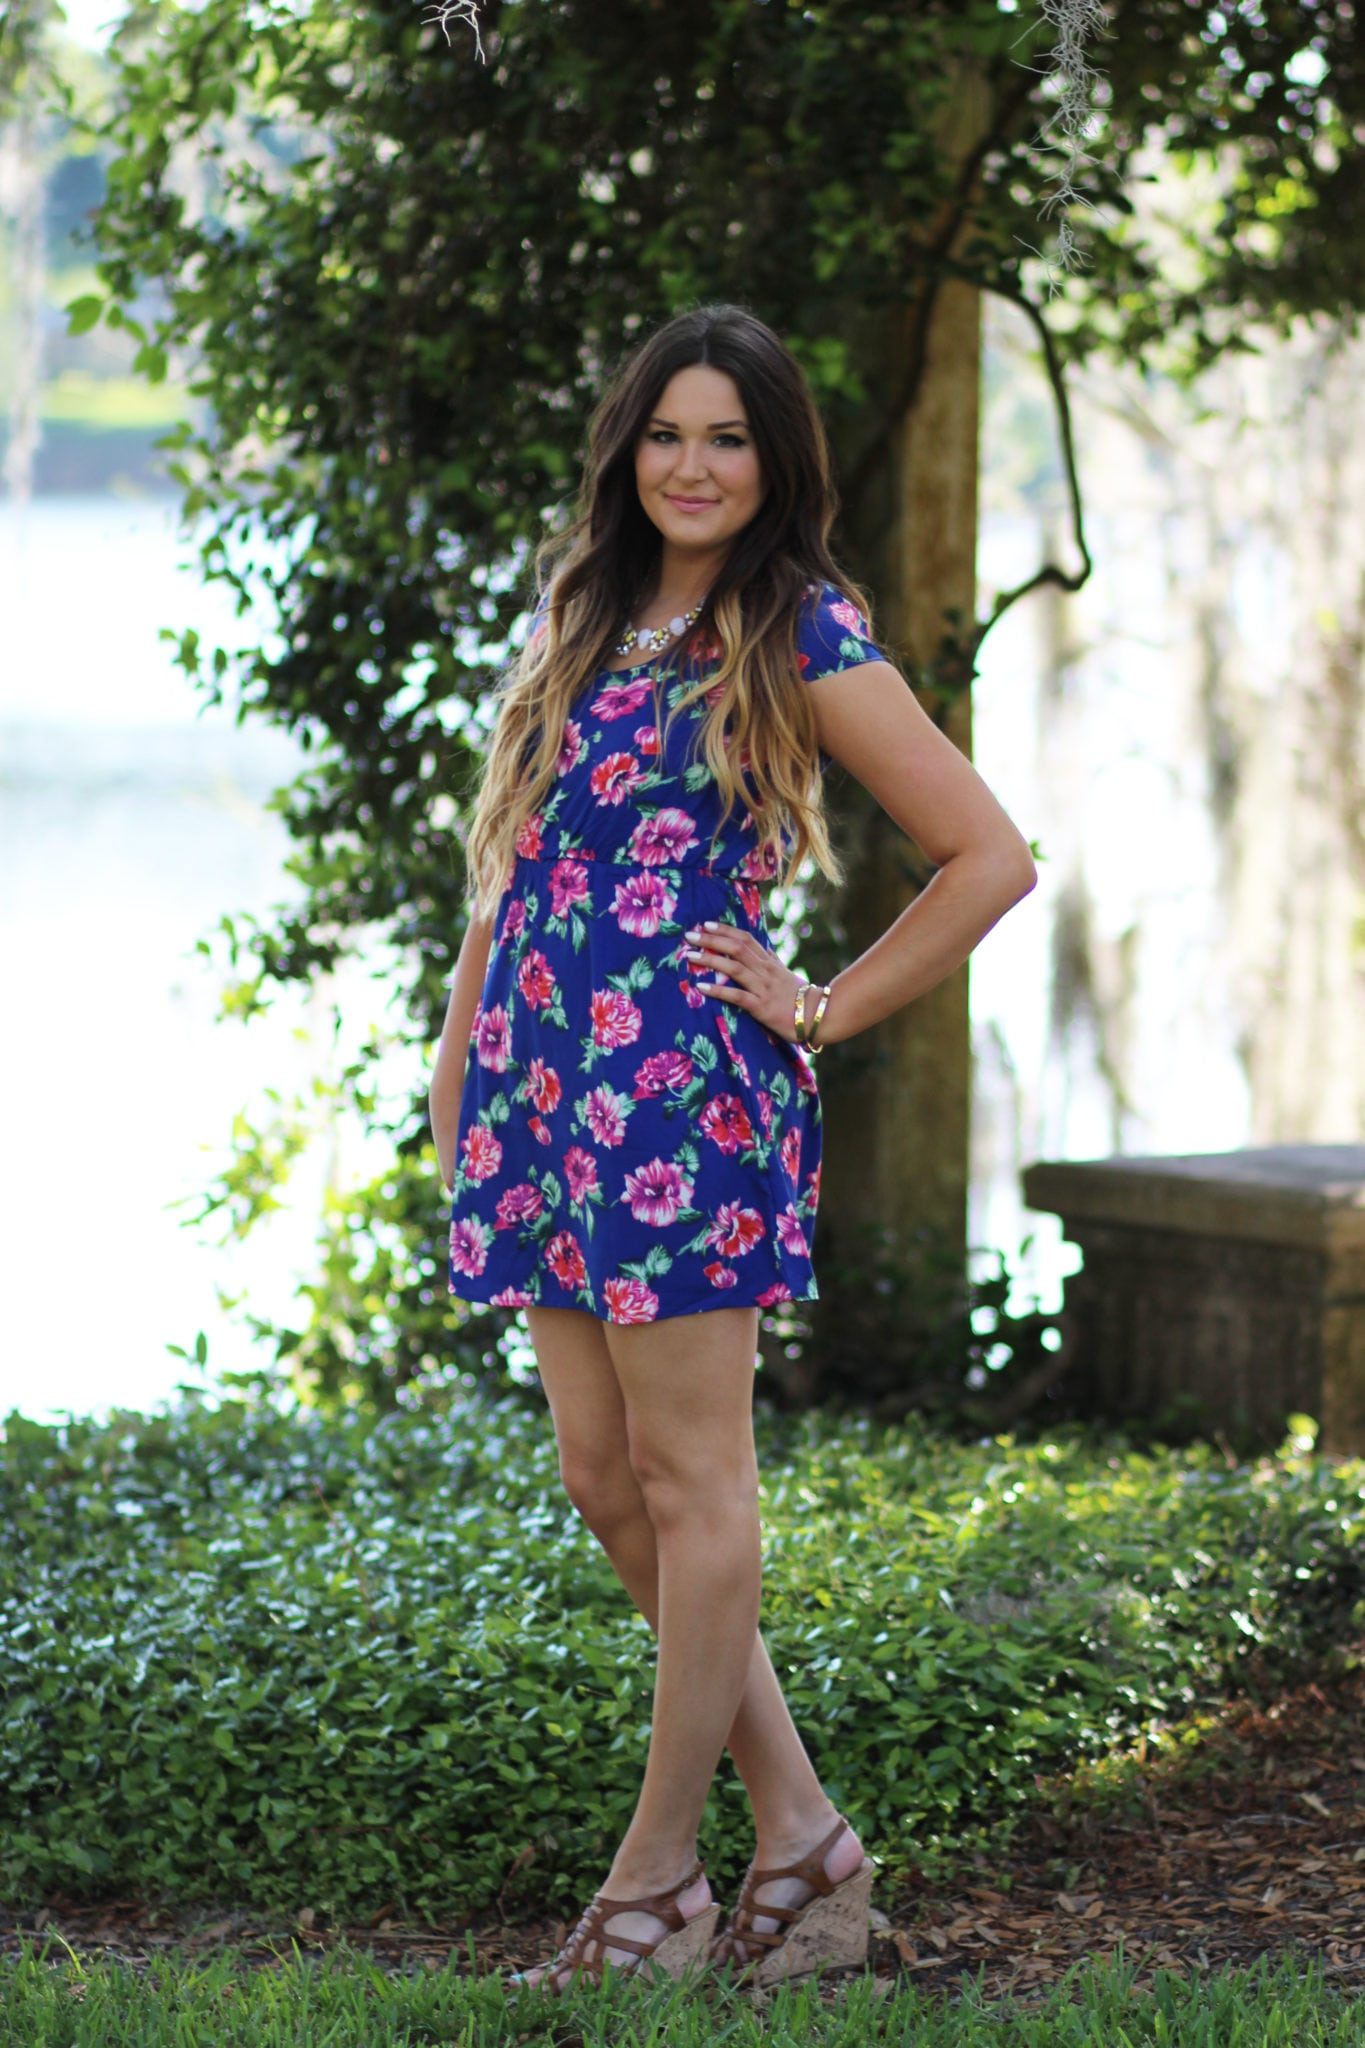 Summer and spring outfits | spring in florida | Mash Elle beauty blogger spring fashion